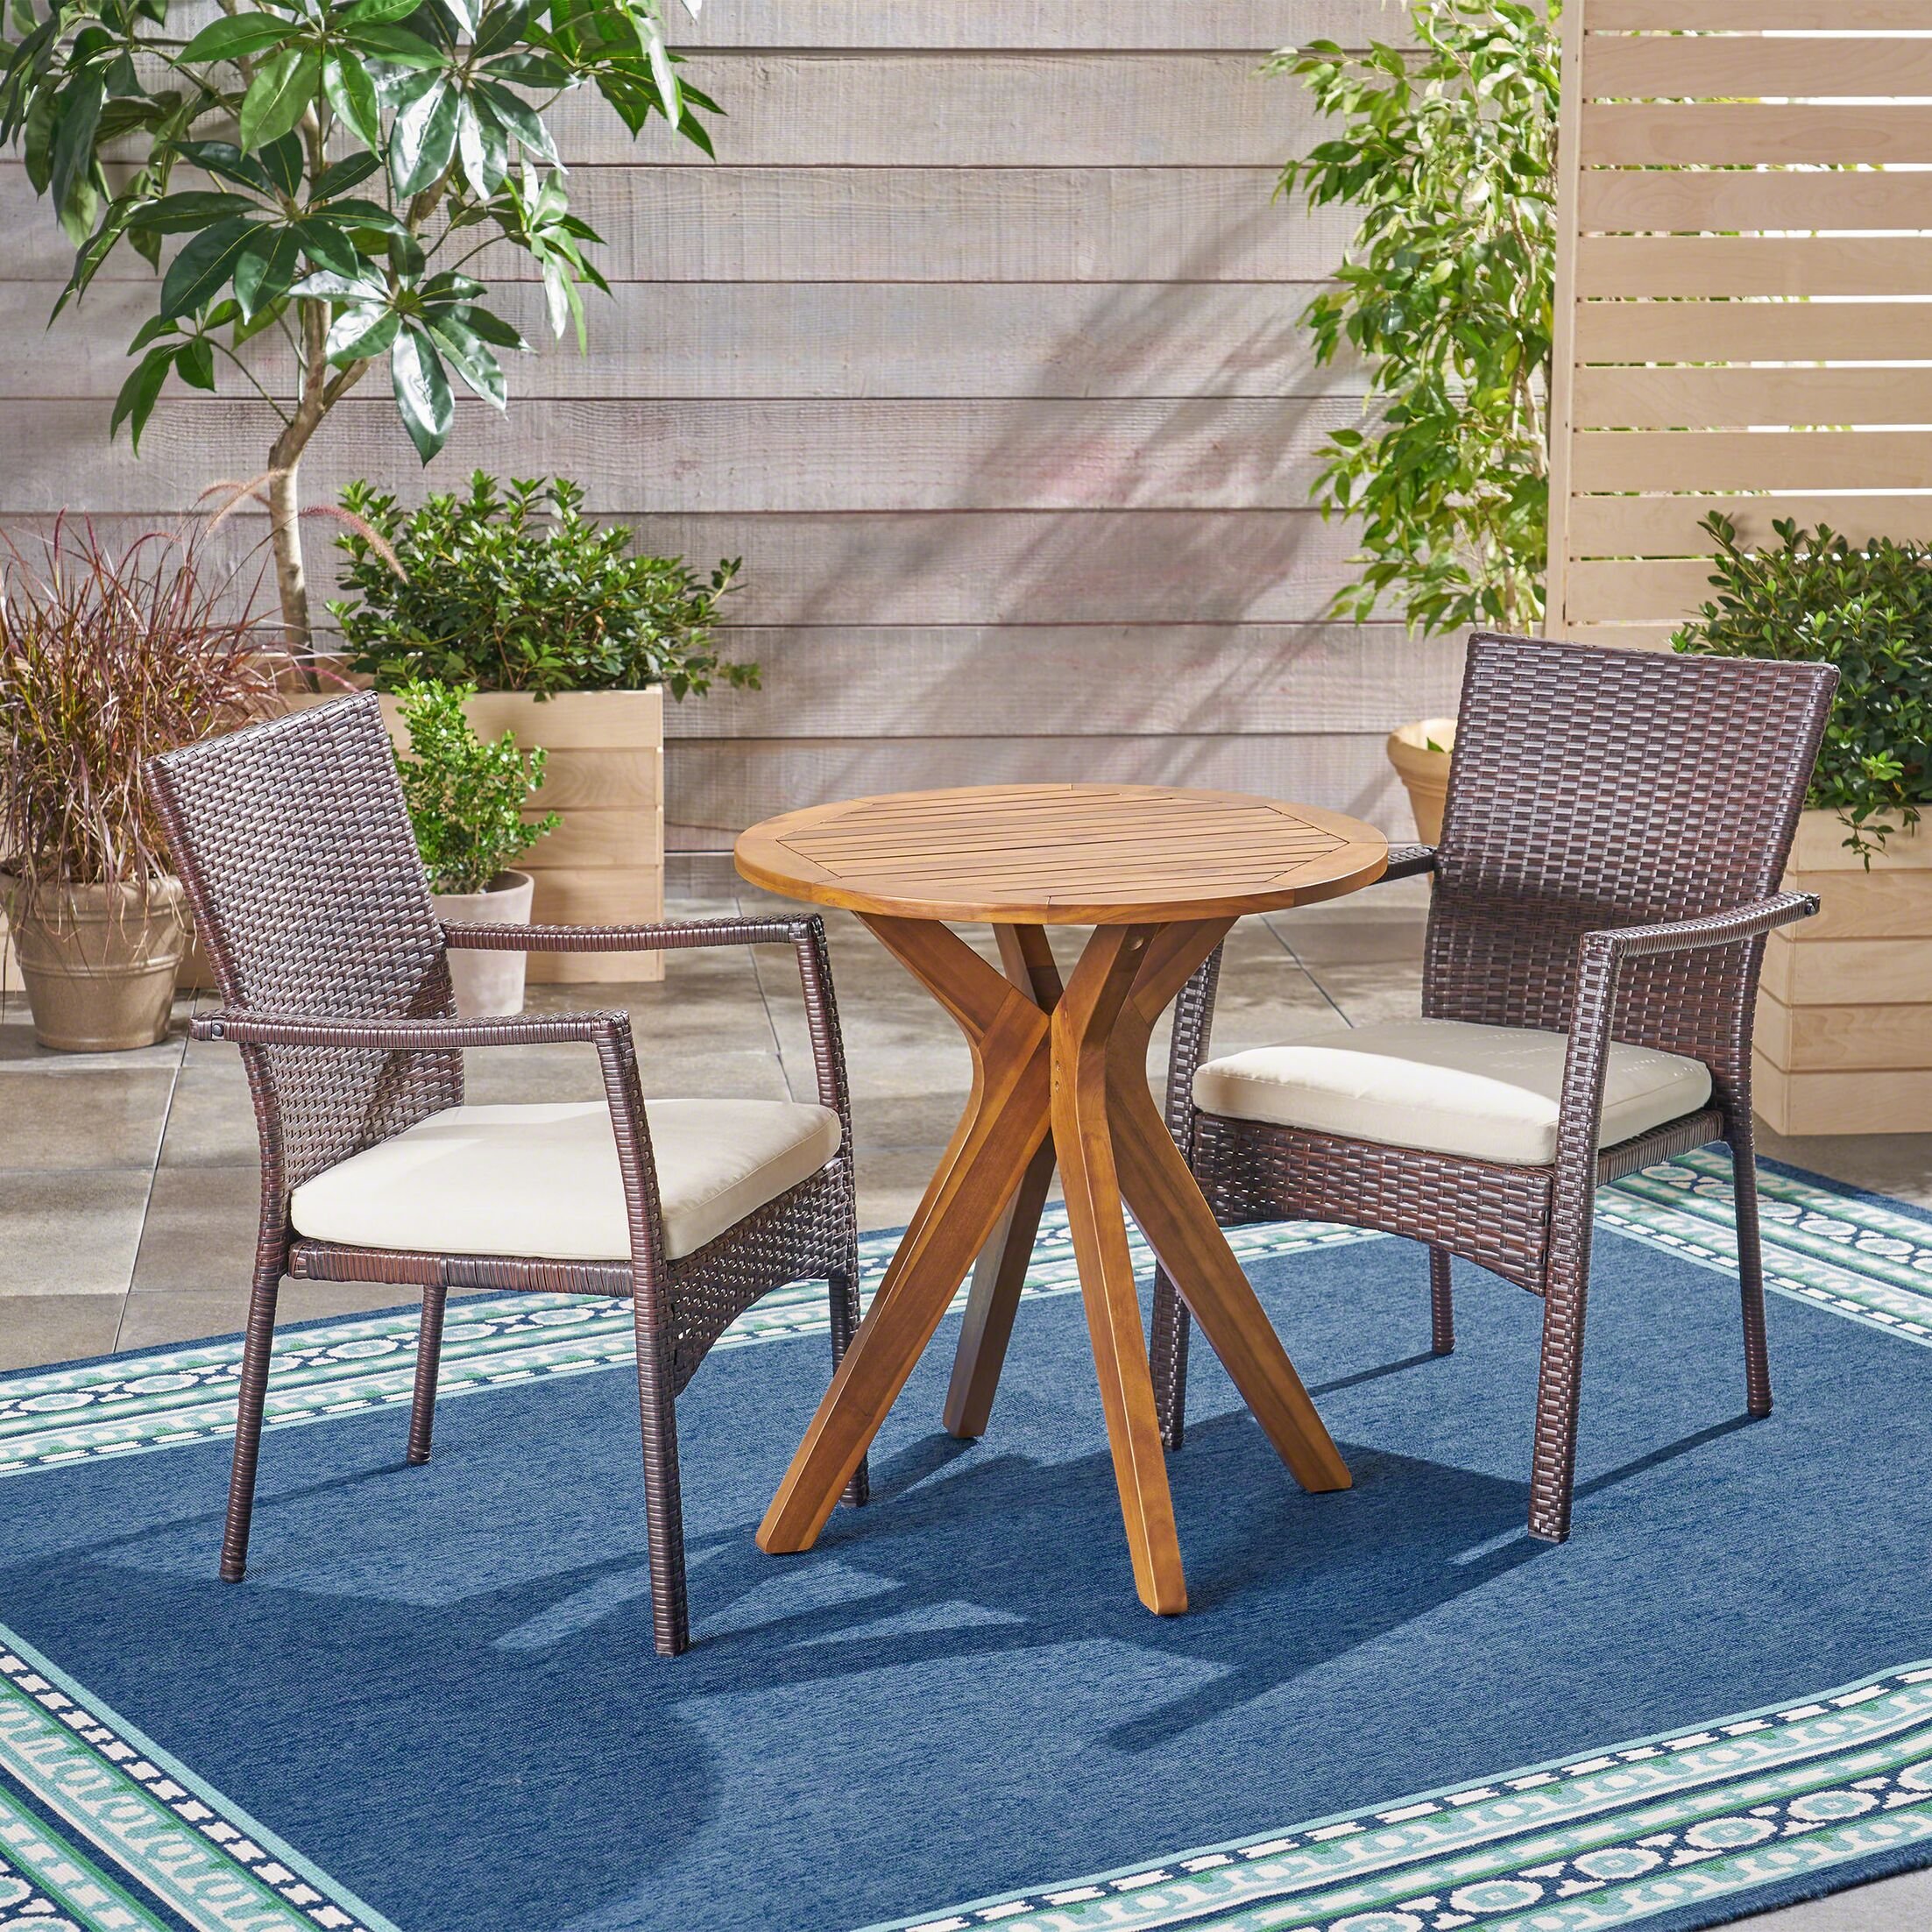 Briar Outdoor 3 Piece Bistro Set with Cushions Color: Teak/Brown, Cushion Color: Cream